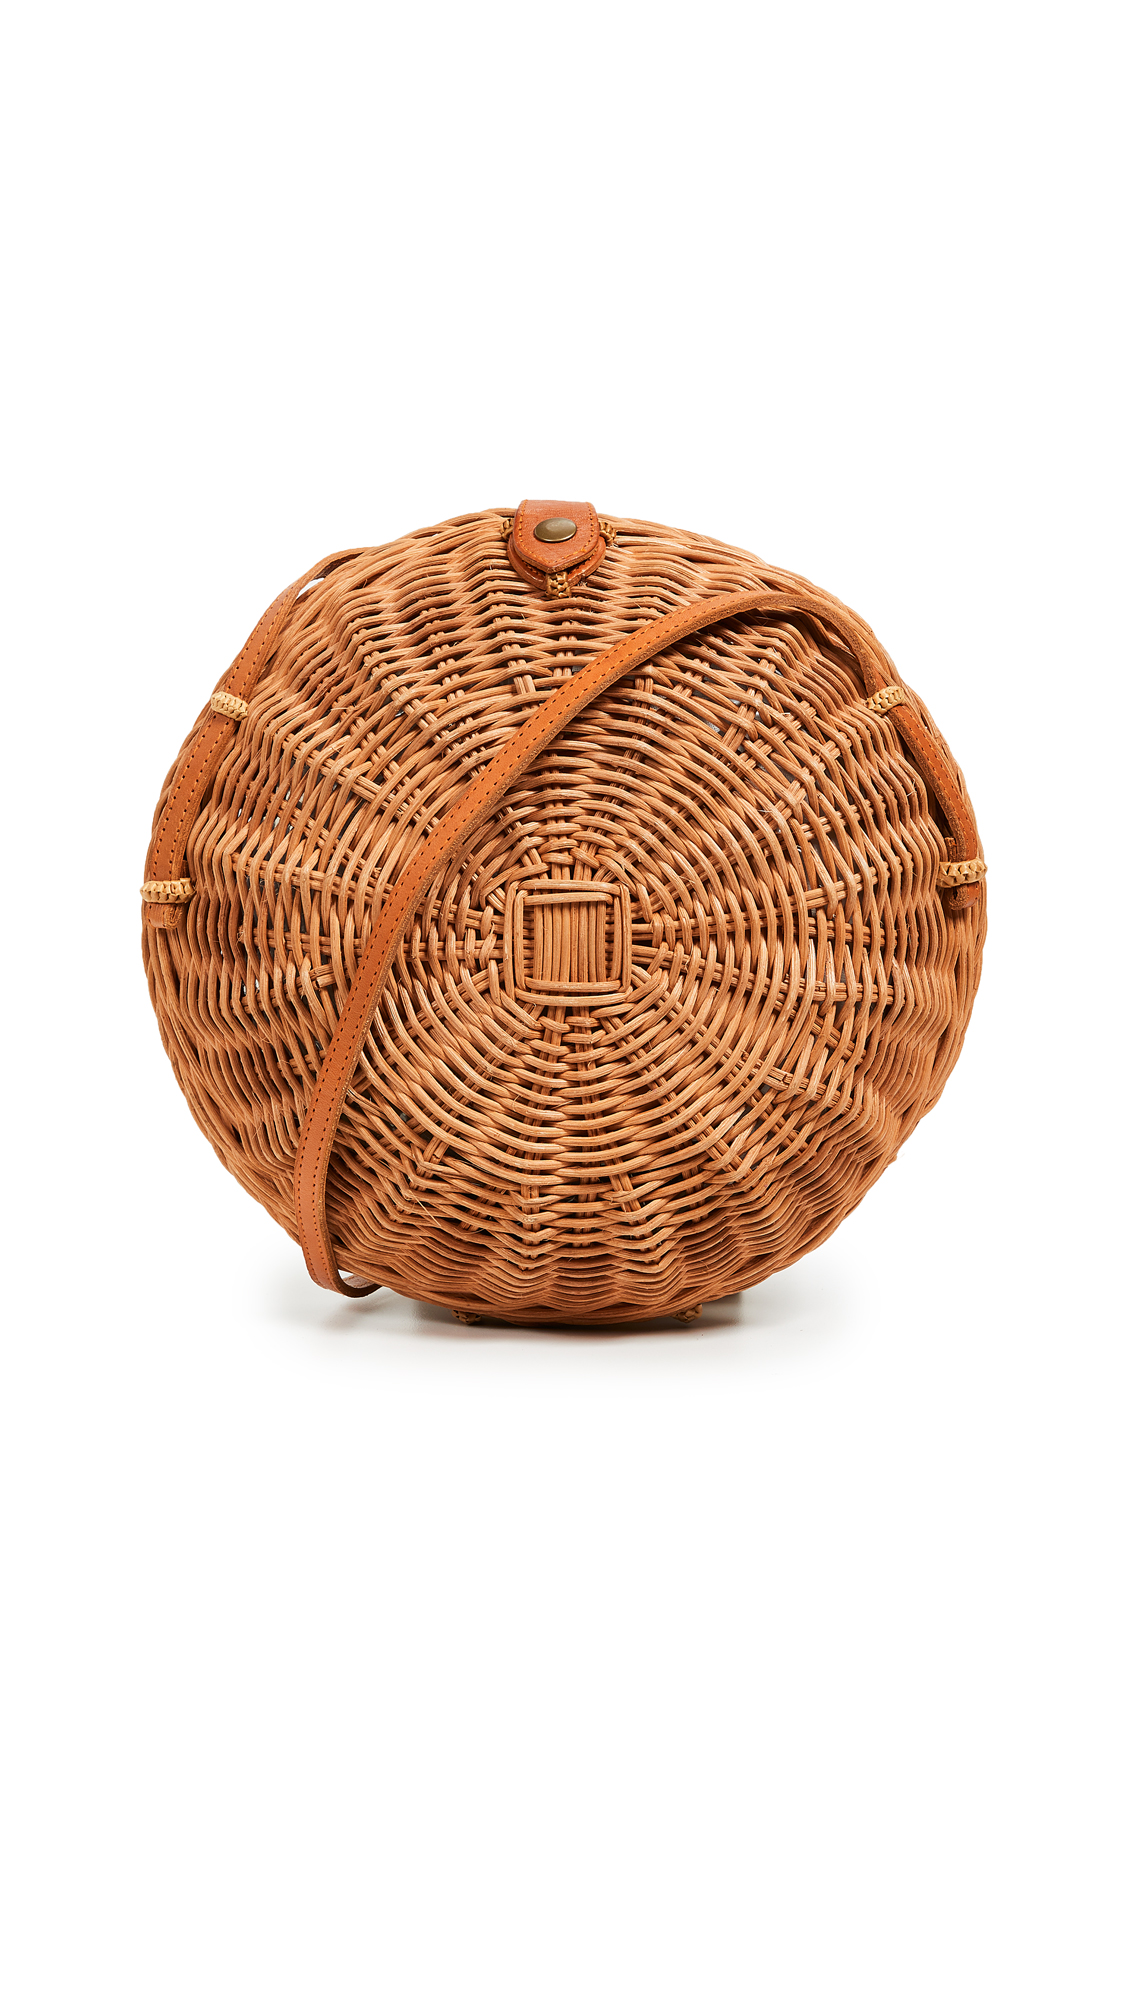 Fabric: Wicker Snap button closure at top Shoulder strap Unlined Dust bag included Weight: 13oz / 0.37kg Imported, Indonesia Measurements Height: 8.75in / 22cm Length: 8.75in / 22cm Depth: 2.75in / 7cm Strap drop: 19.75in / 50cm